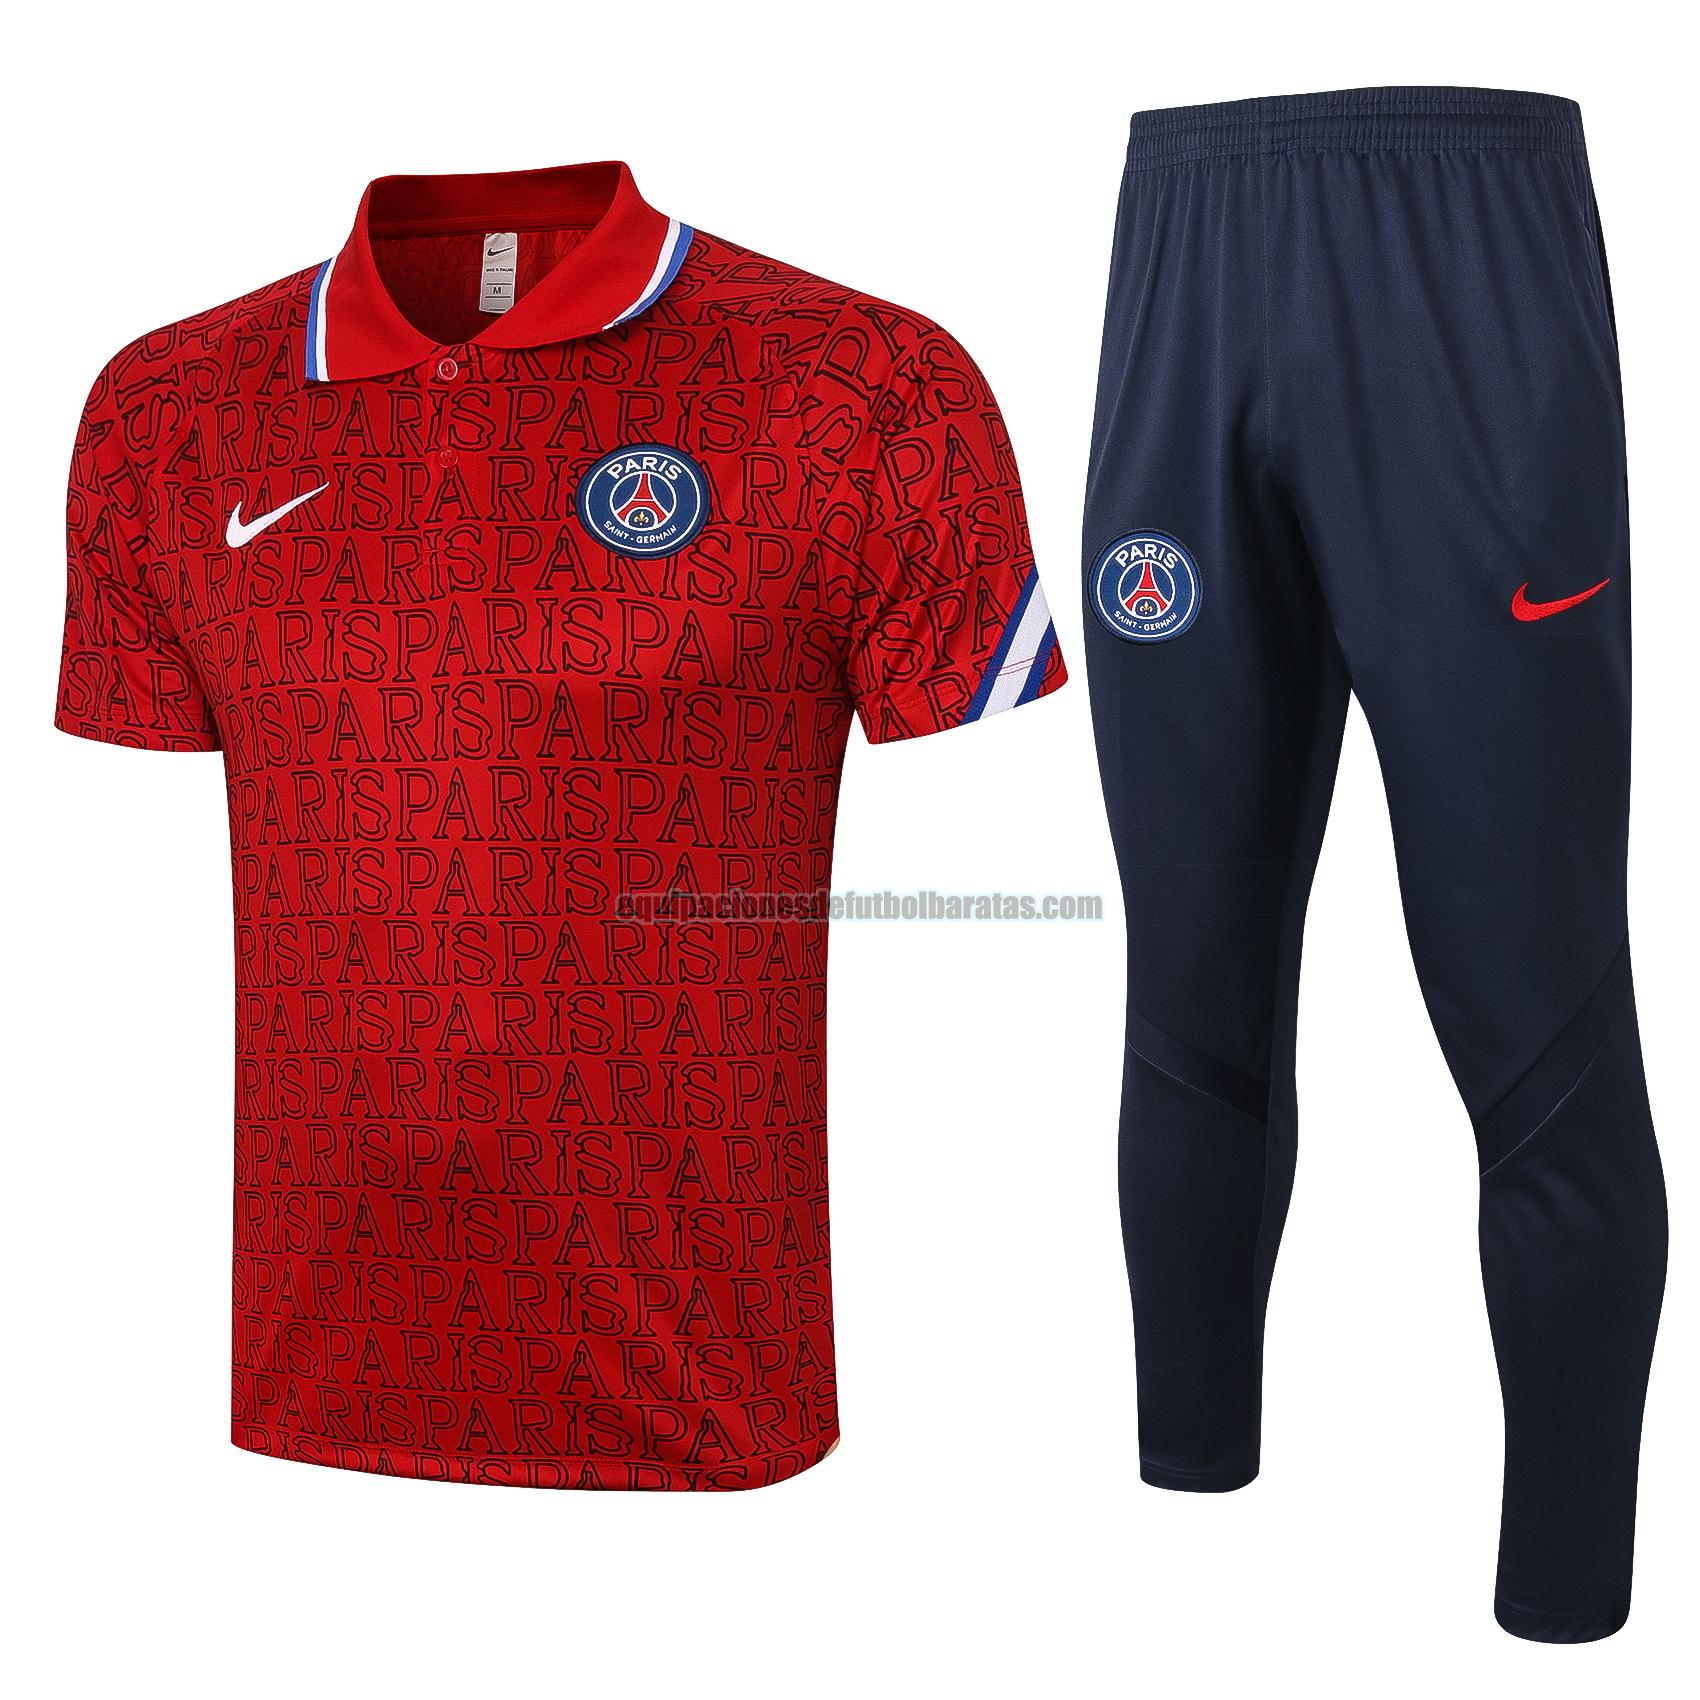 camiseta polo paris saint germain 2020-2021 rojo conjunto